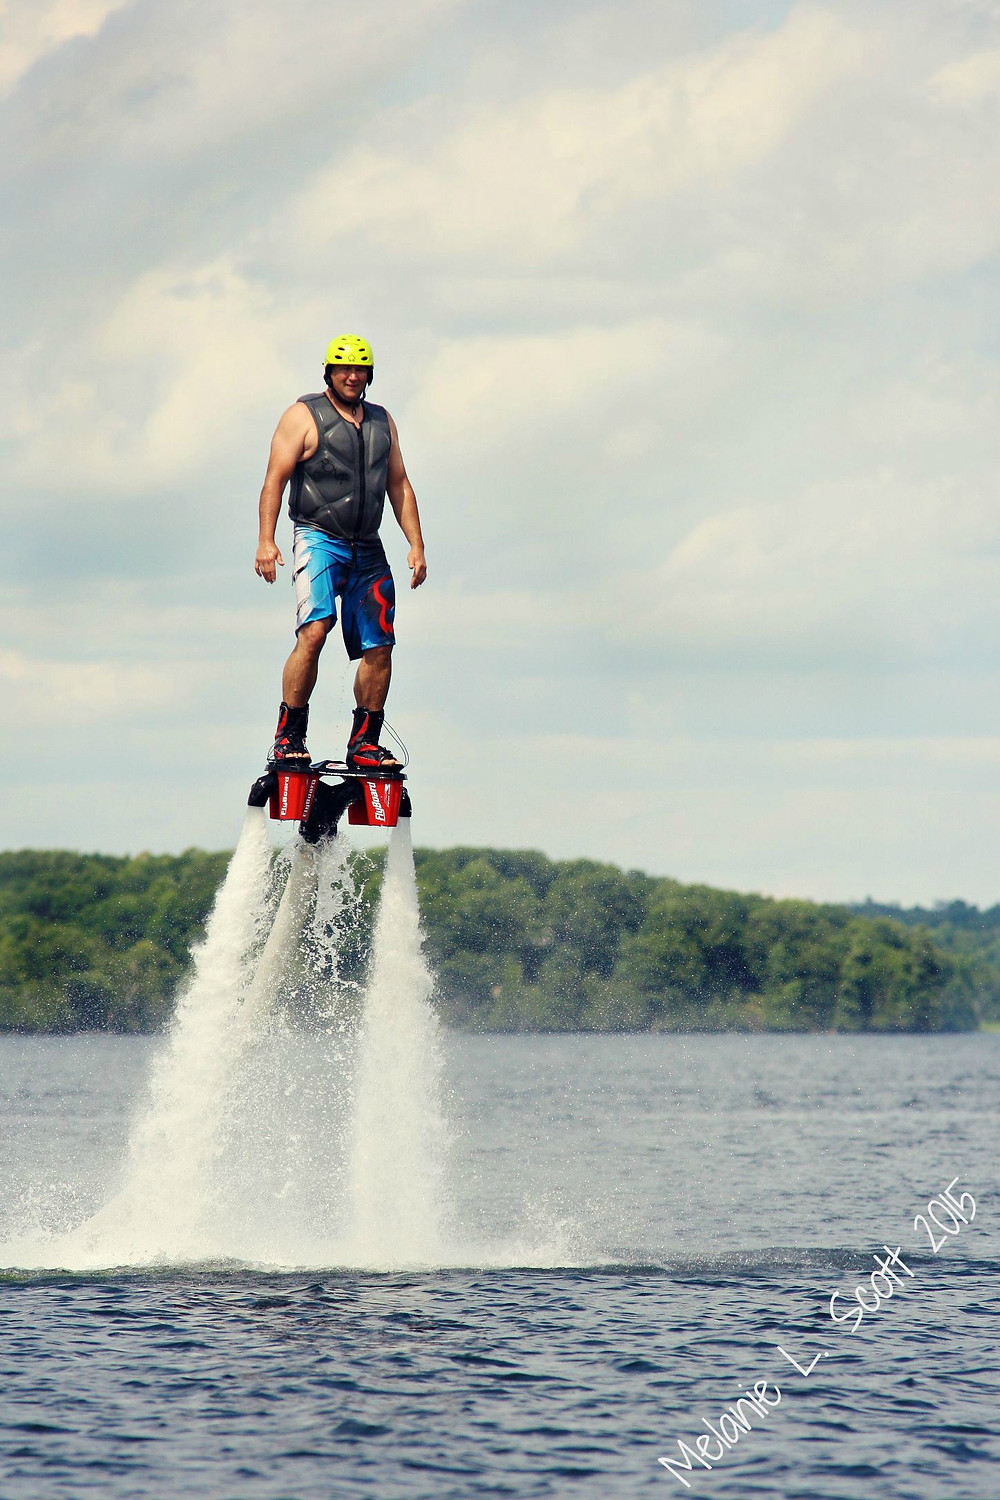 Brian rocking the Flyboard for the second time!  Photo courtesy of Melanie Scott.